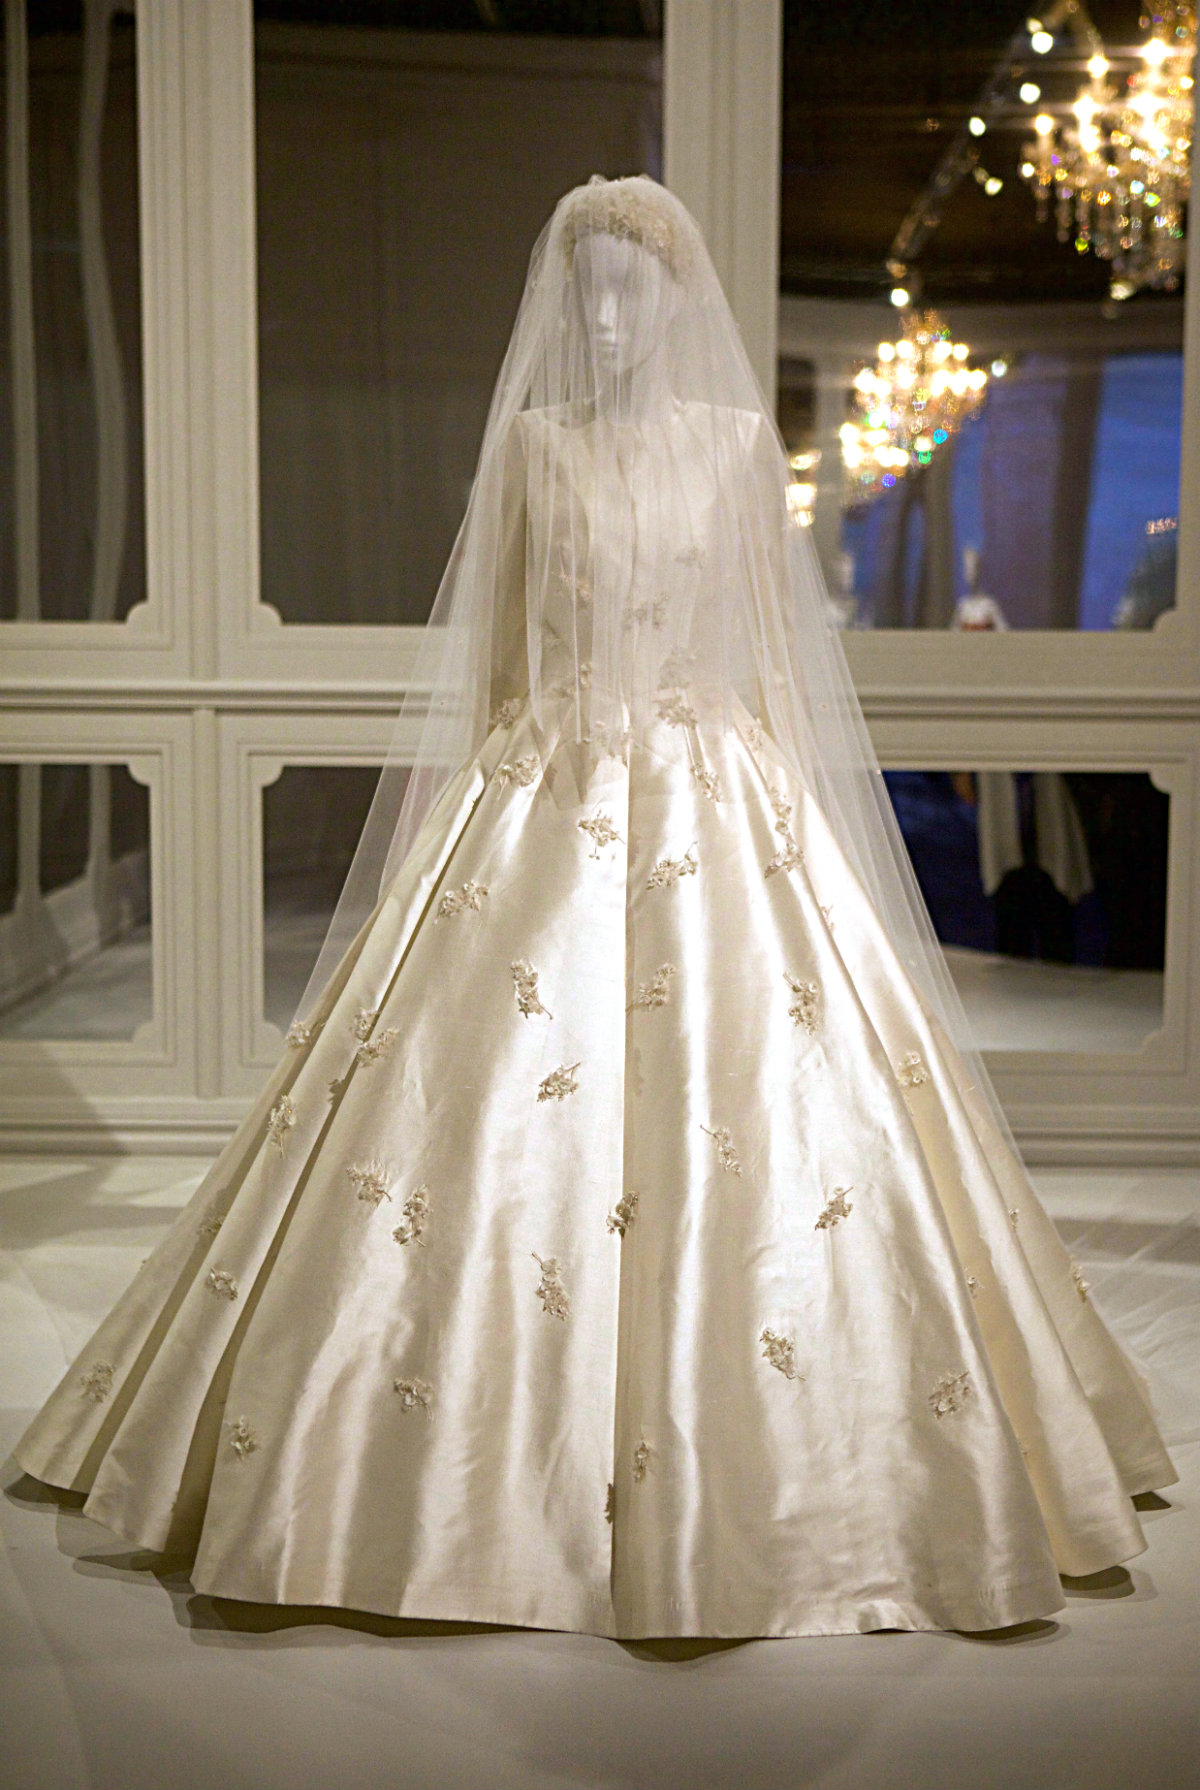 Mirander Kerr's wedding dress. The House of Dior- Seventy Years of Haute Couture. Photo credit: Eco Warrior Princess